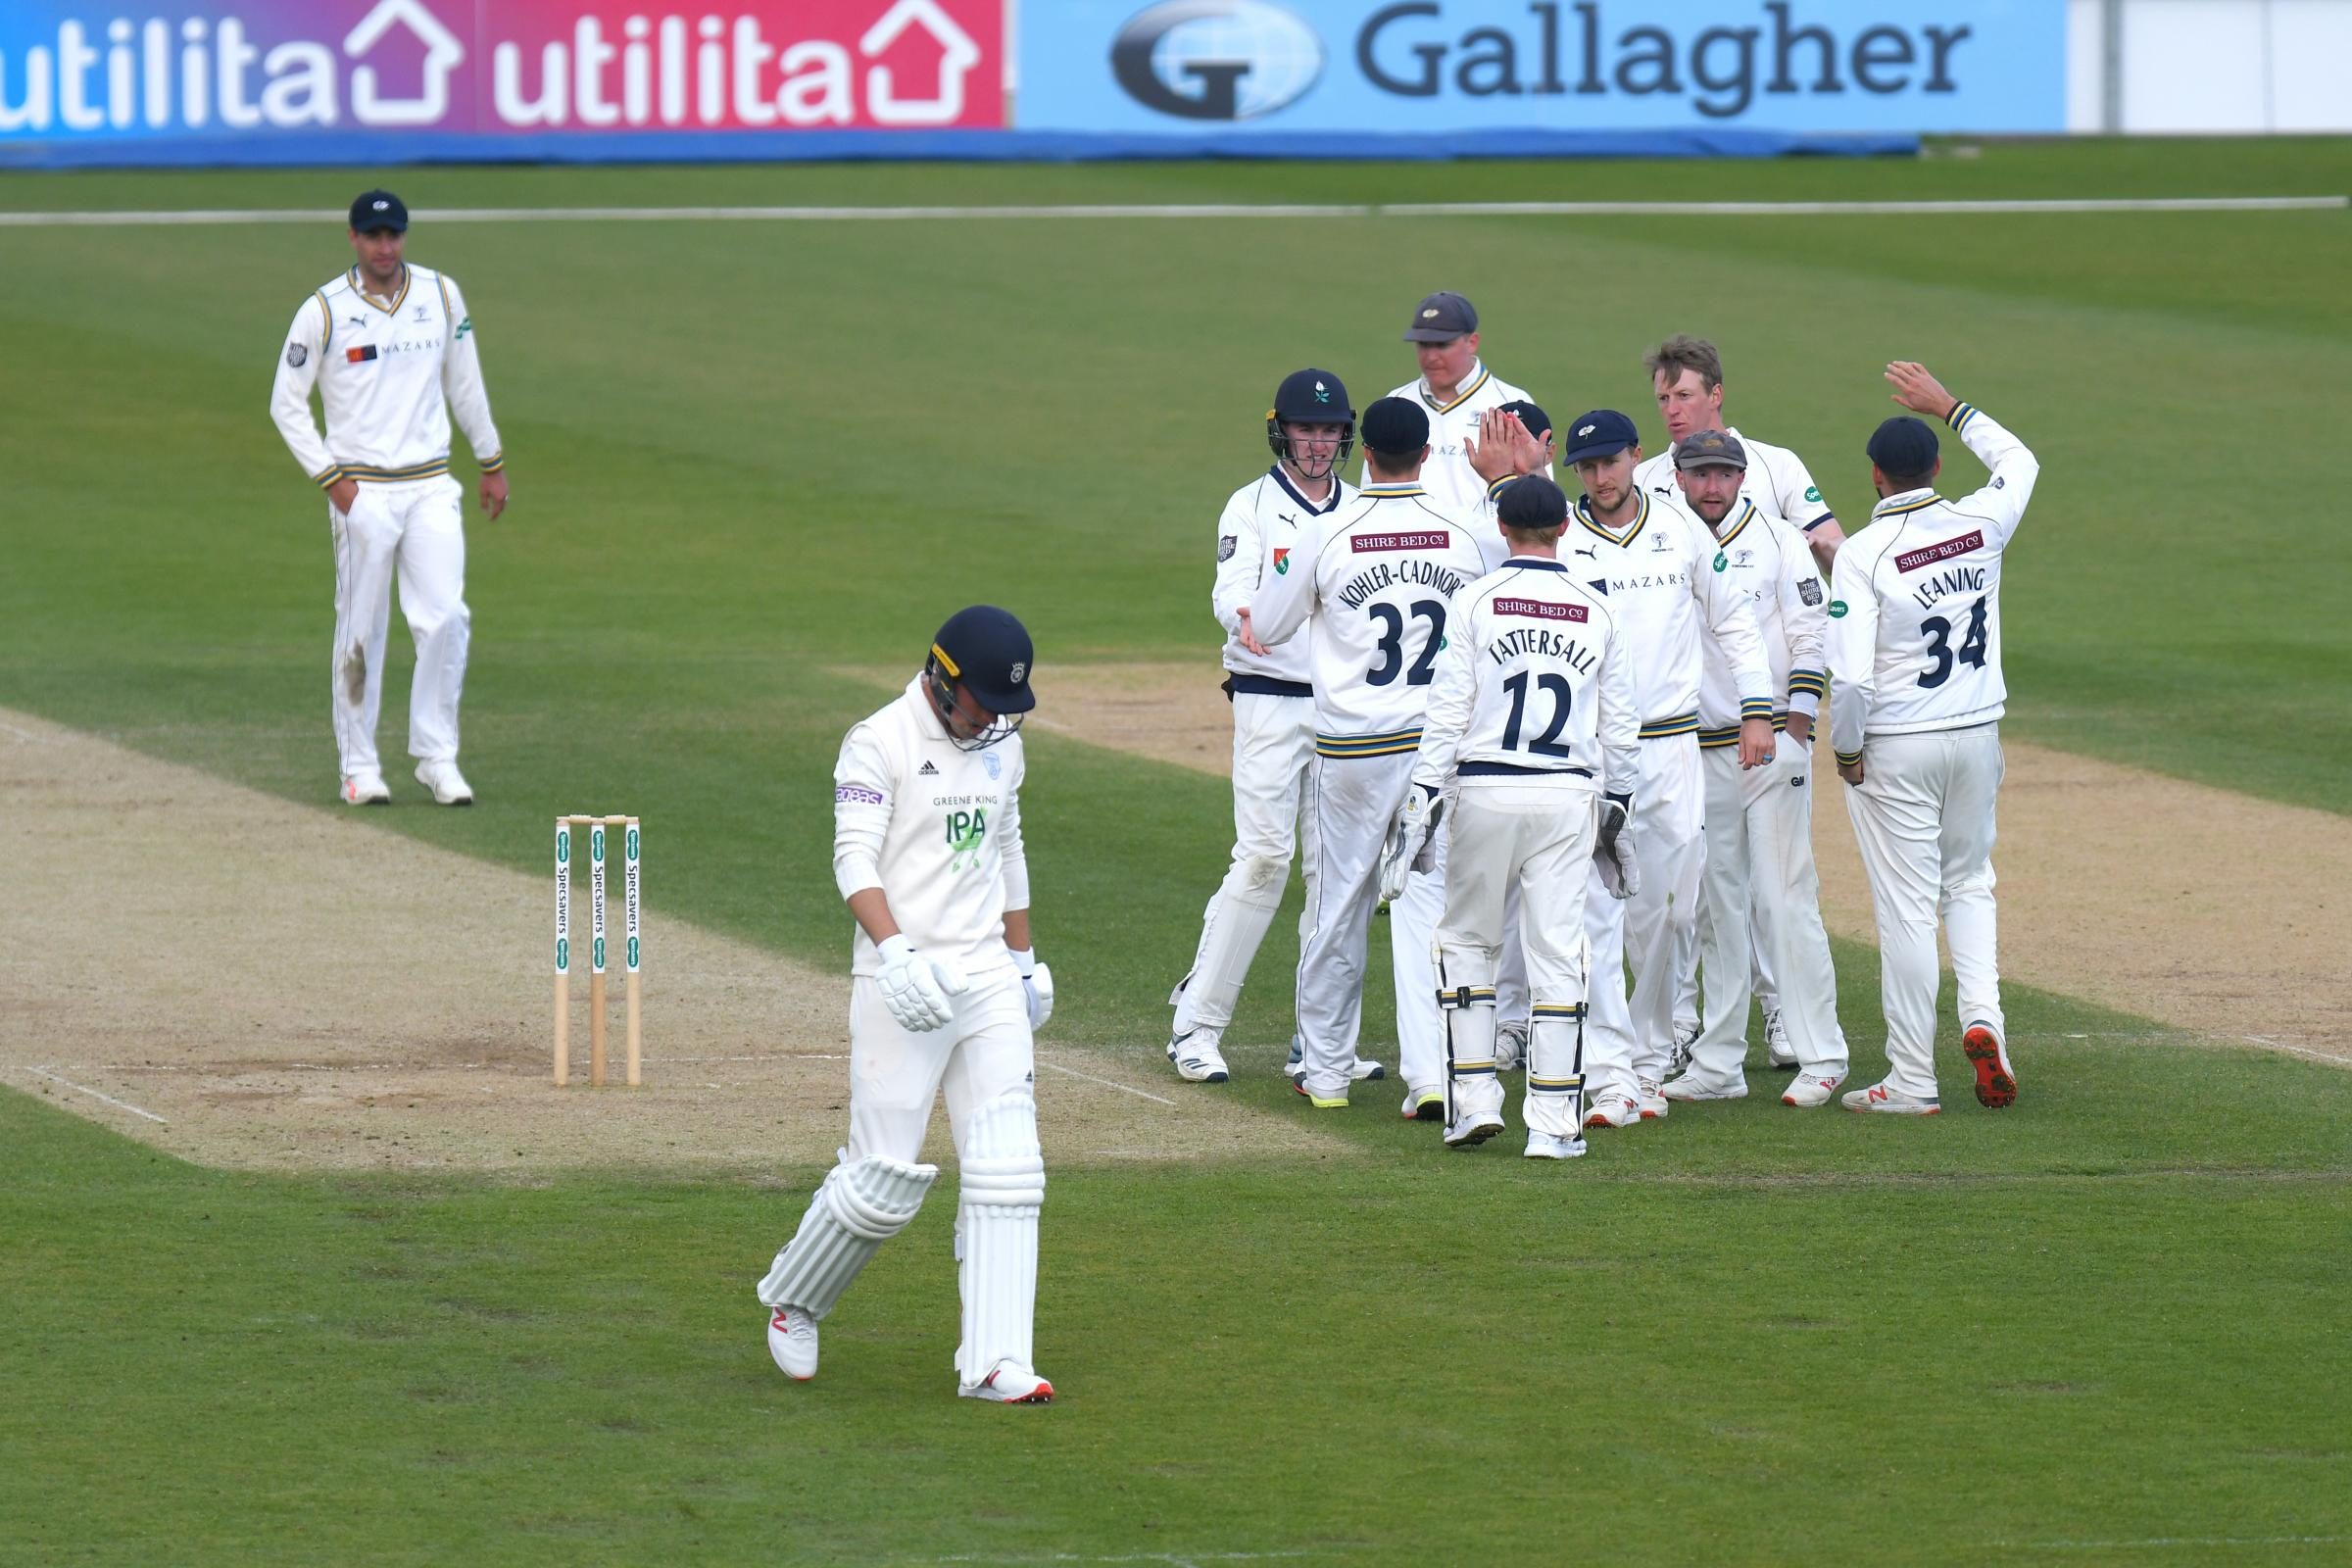 Joe Weatherley's dismissal precipitated Hampshire's second-innings collapse (Photo by Neil Marshall)